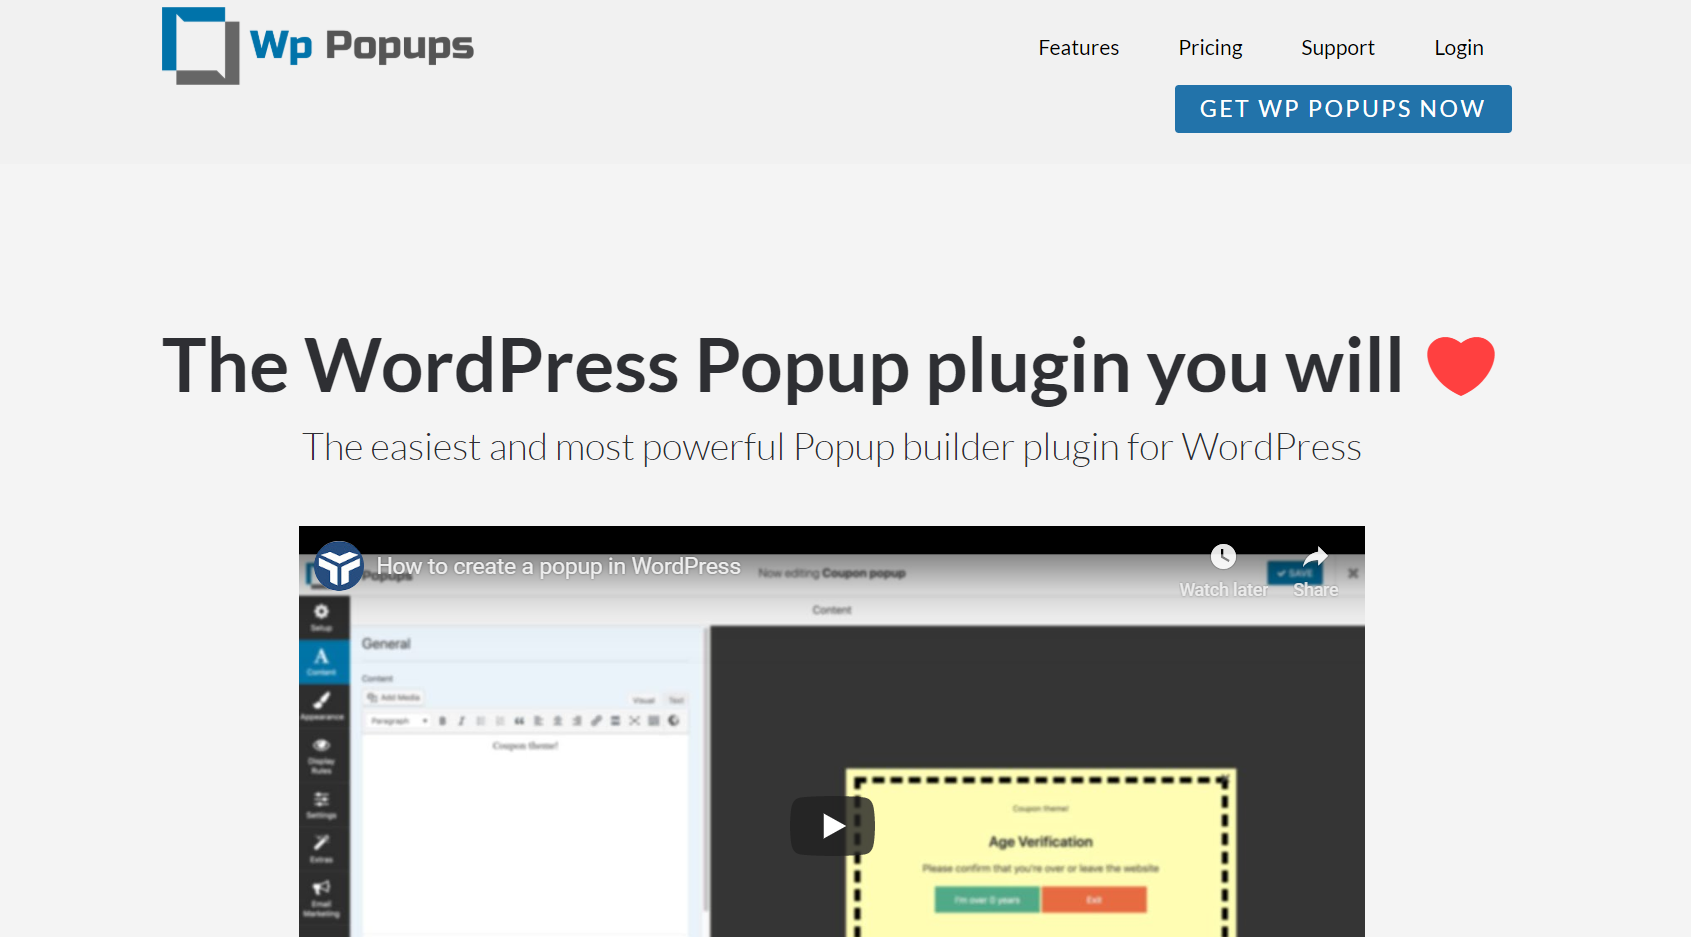 wp popups review